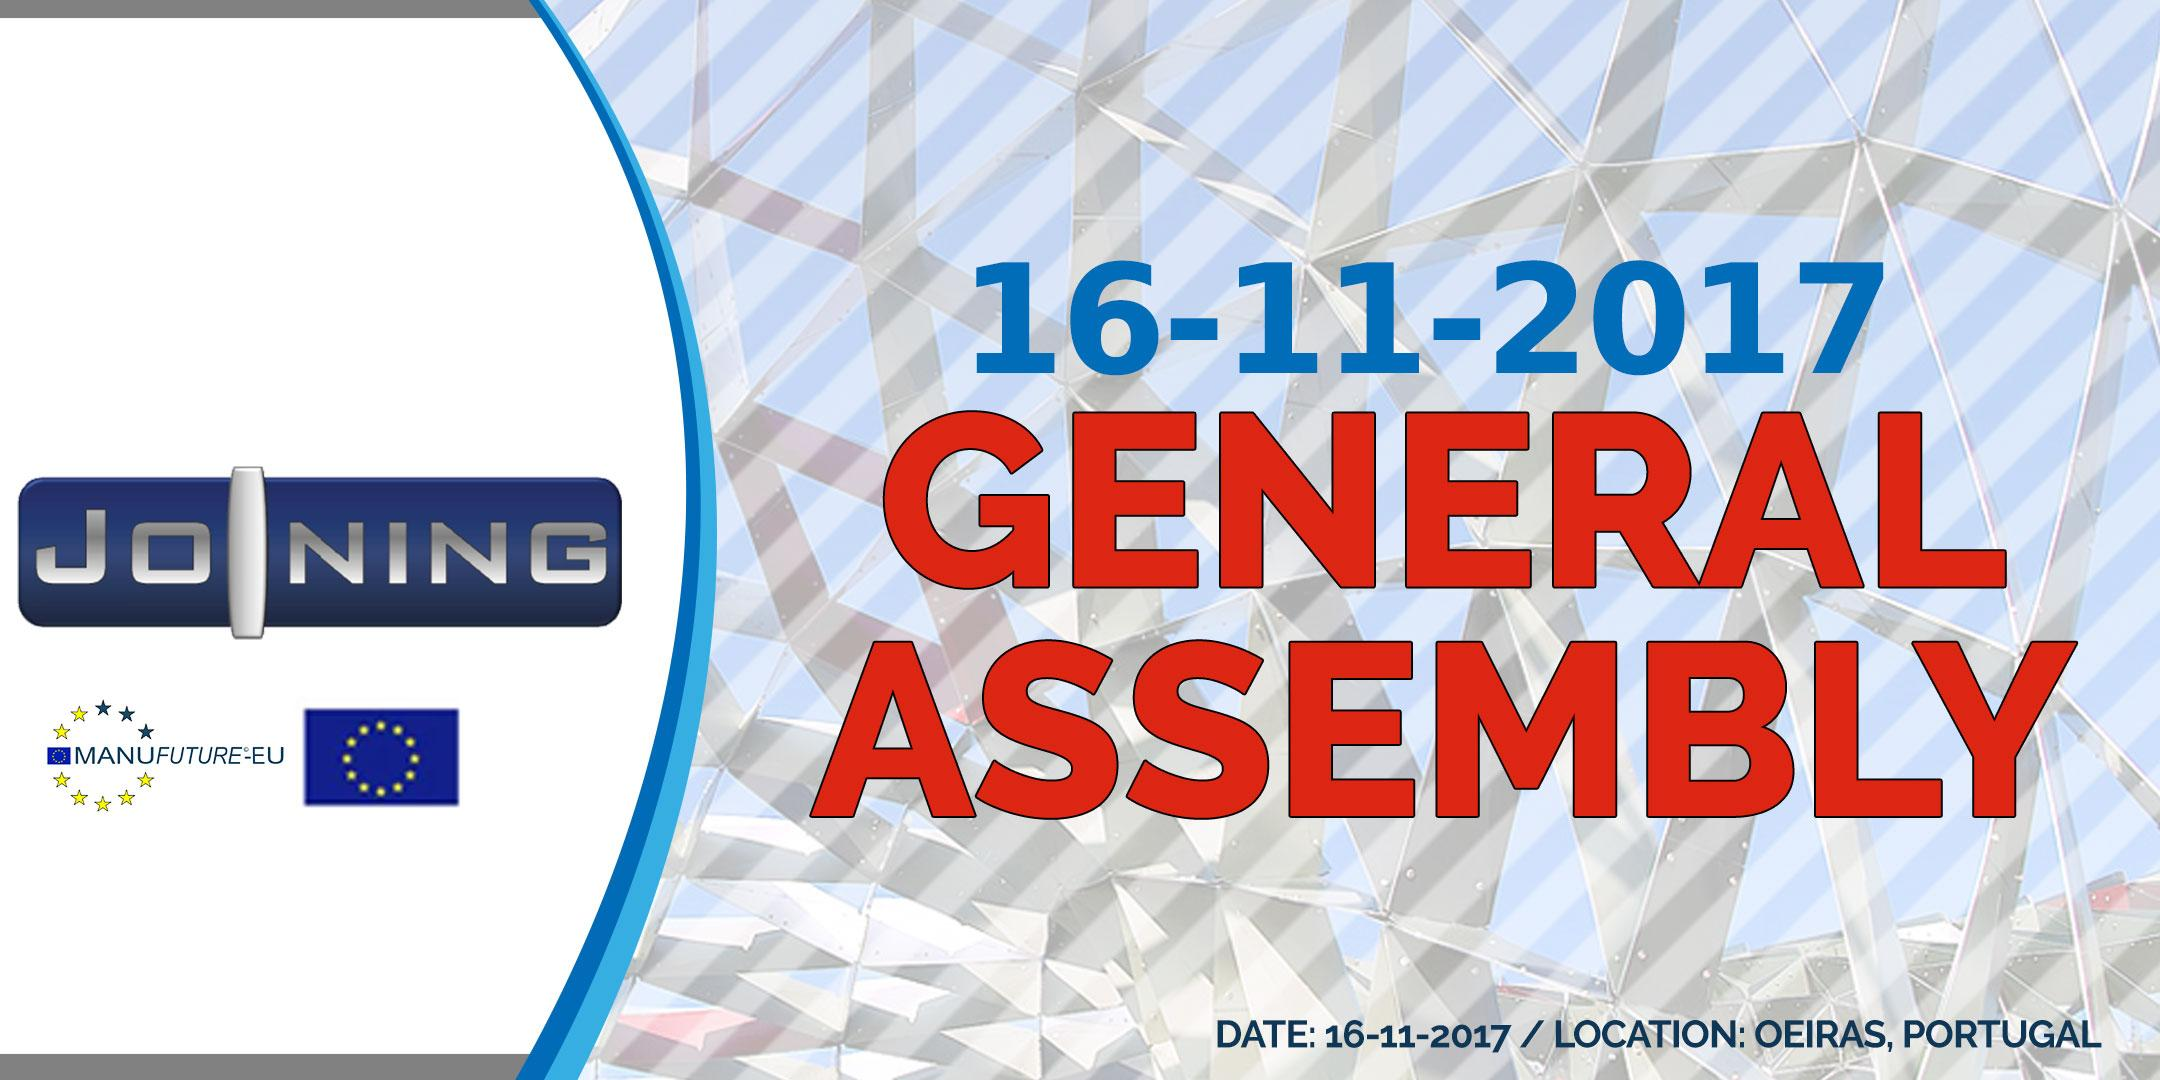 7th European Joining Platform General Assembly Meeting